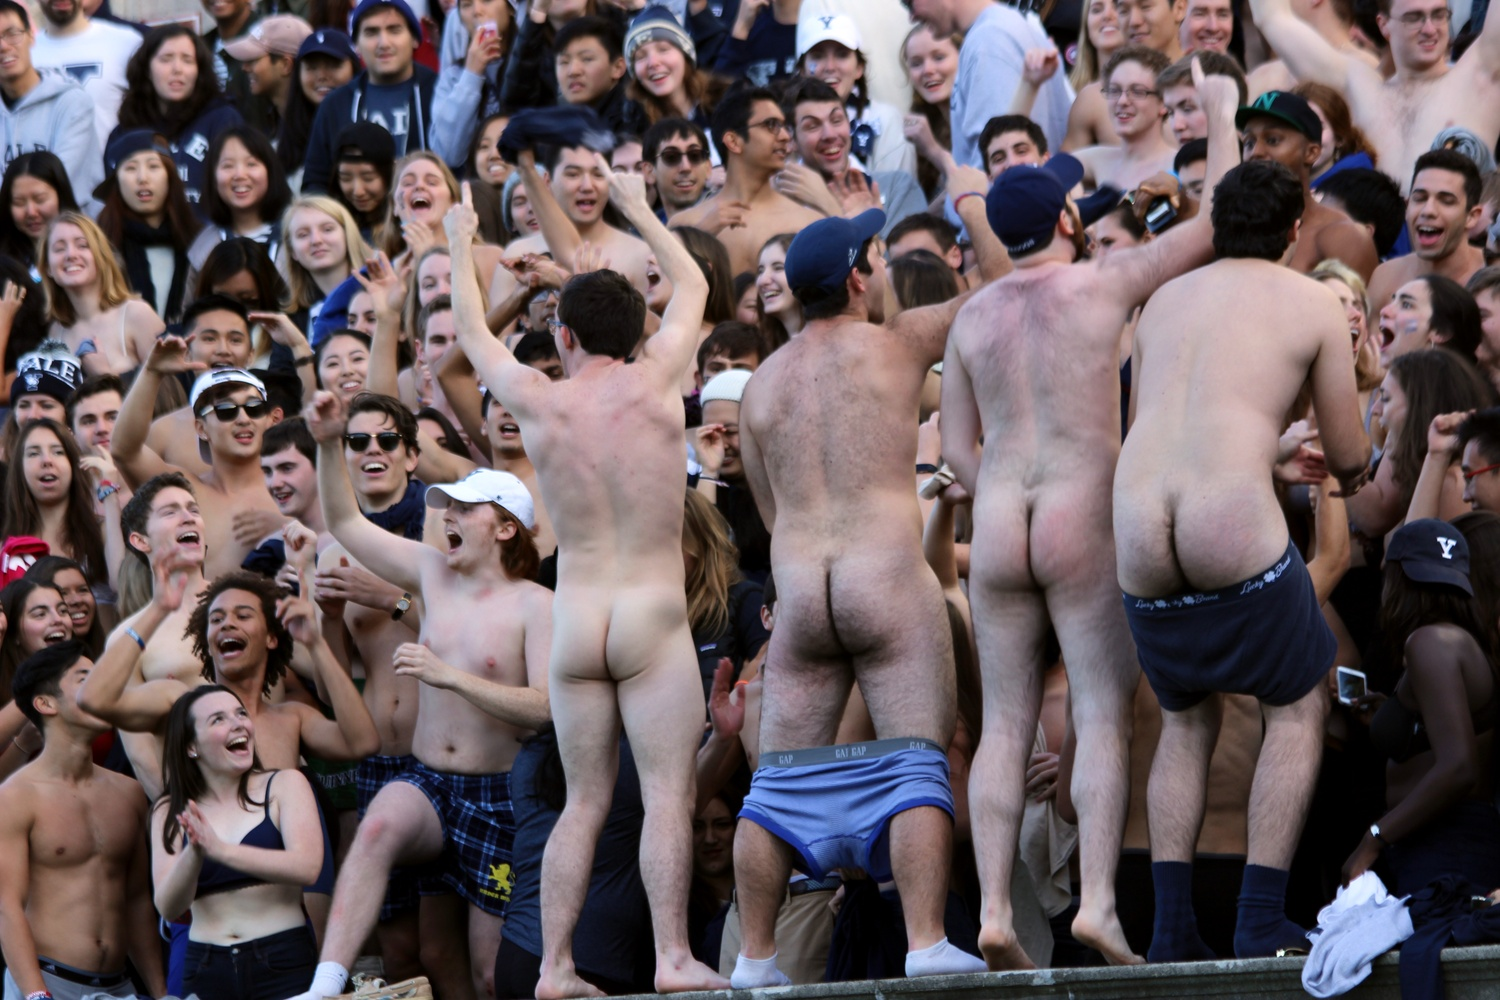 Ditching the majority of (if not all) clothing, dozens of Yale students drew attention for an unusual method of supporting their team. Following response by the Harvard University Police Department, the Bulldogs quickly put their clothes back on.